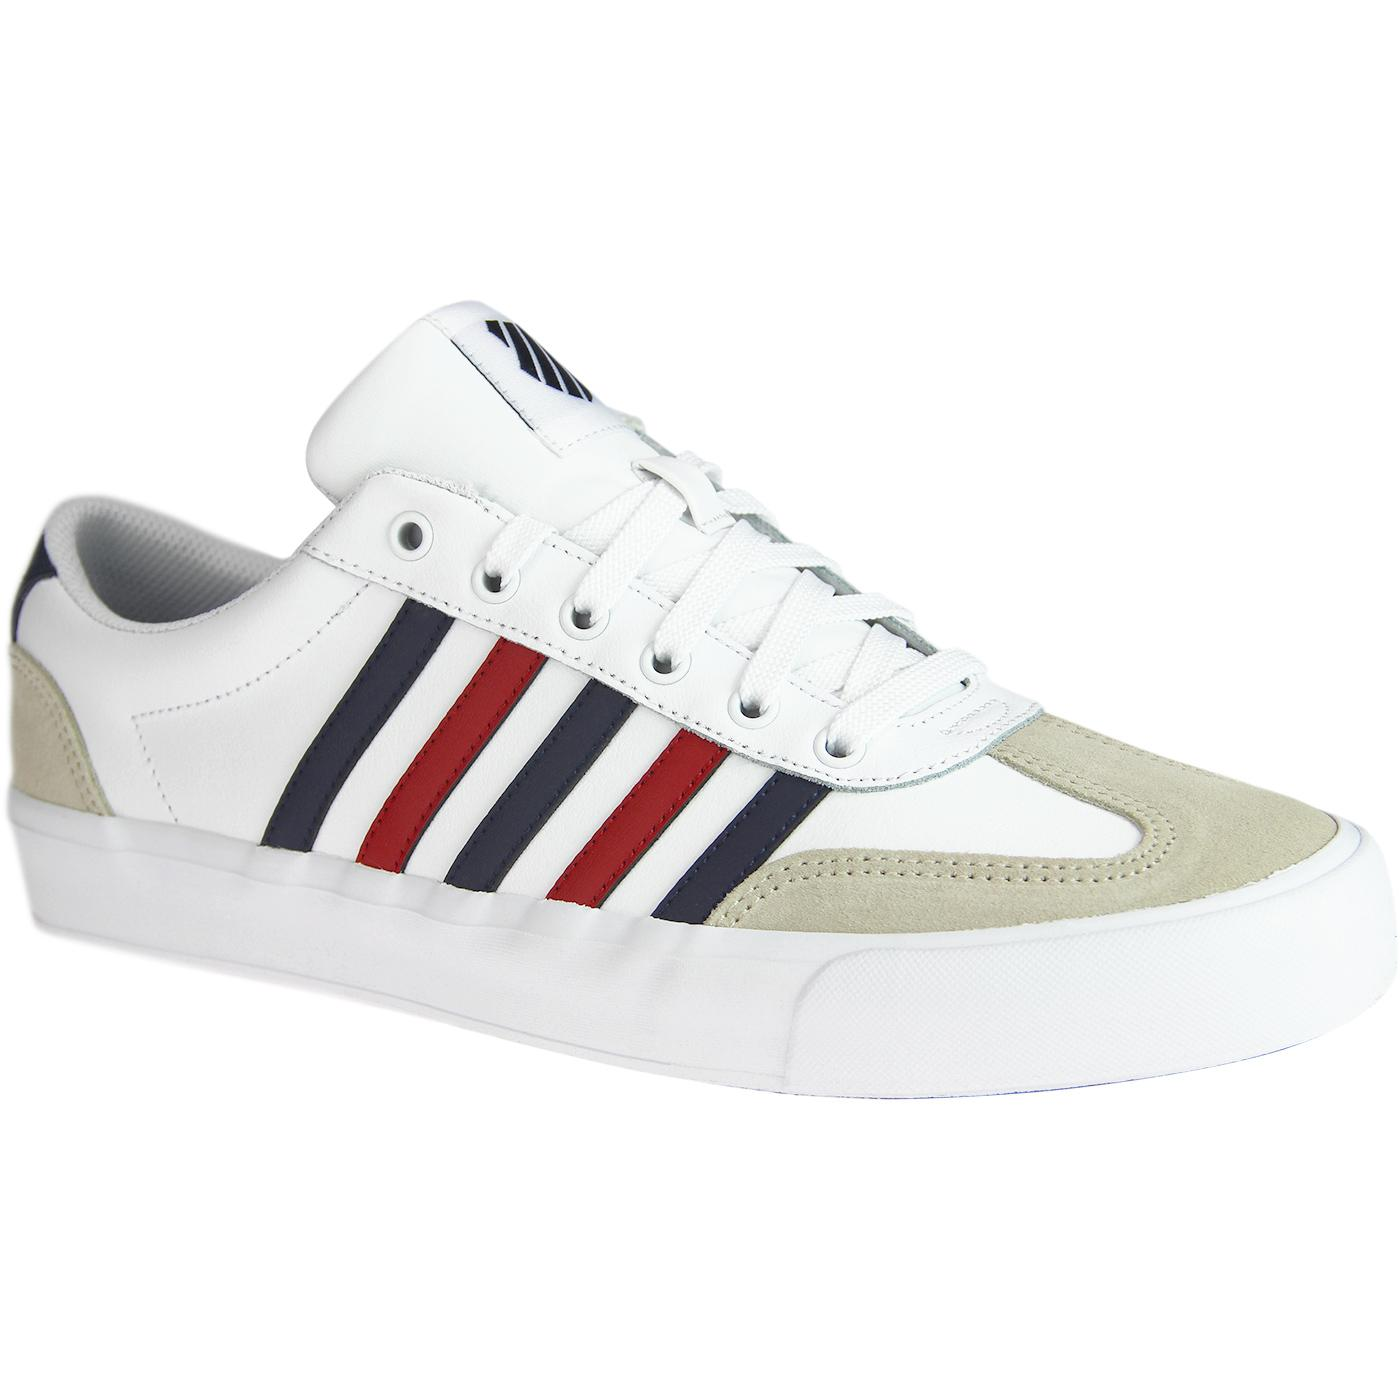 Addison K-SWISS Retro Leather Vulcanised Trainers